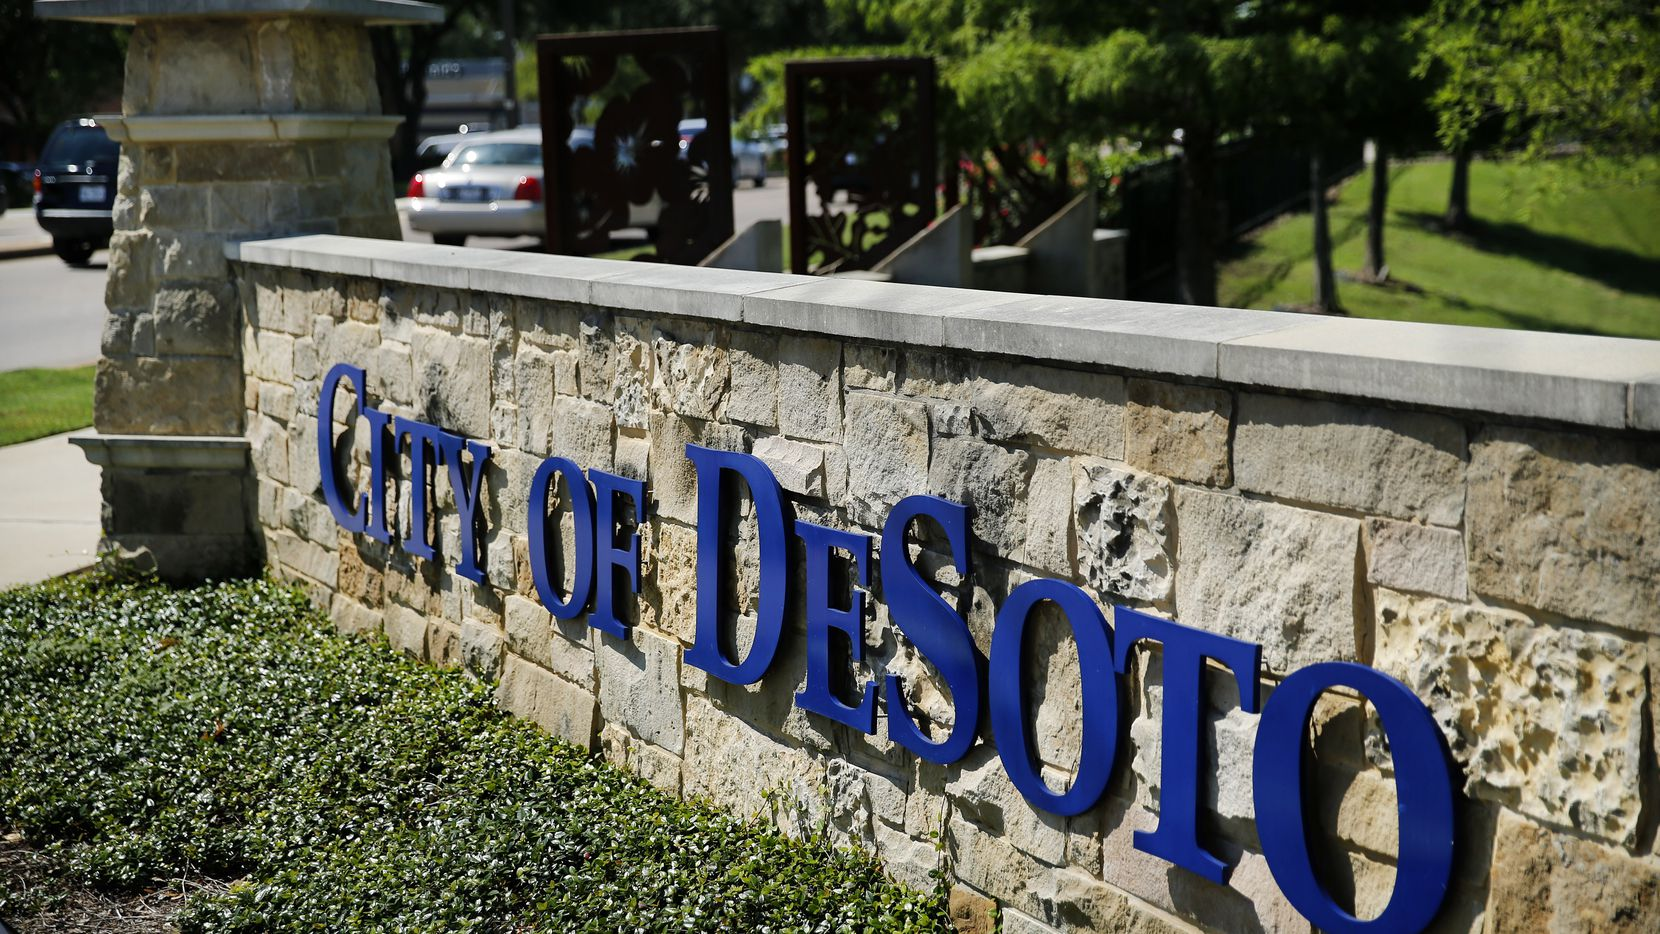 The City of DeSoto welcome sign at E. Pleasant Run Rd. and Hampton Rd. in DeSoto, Texas, Wednesday, June 24, 2020.